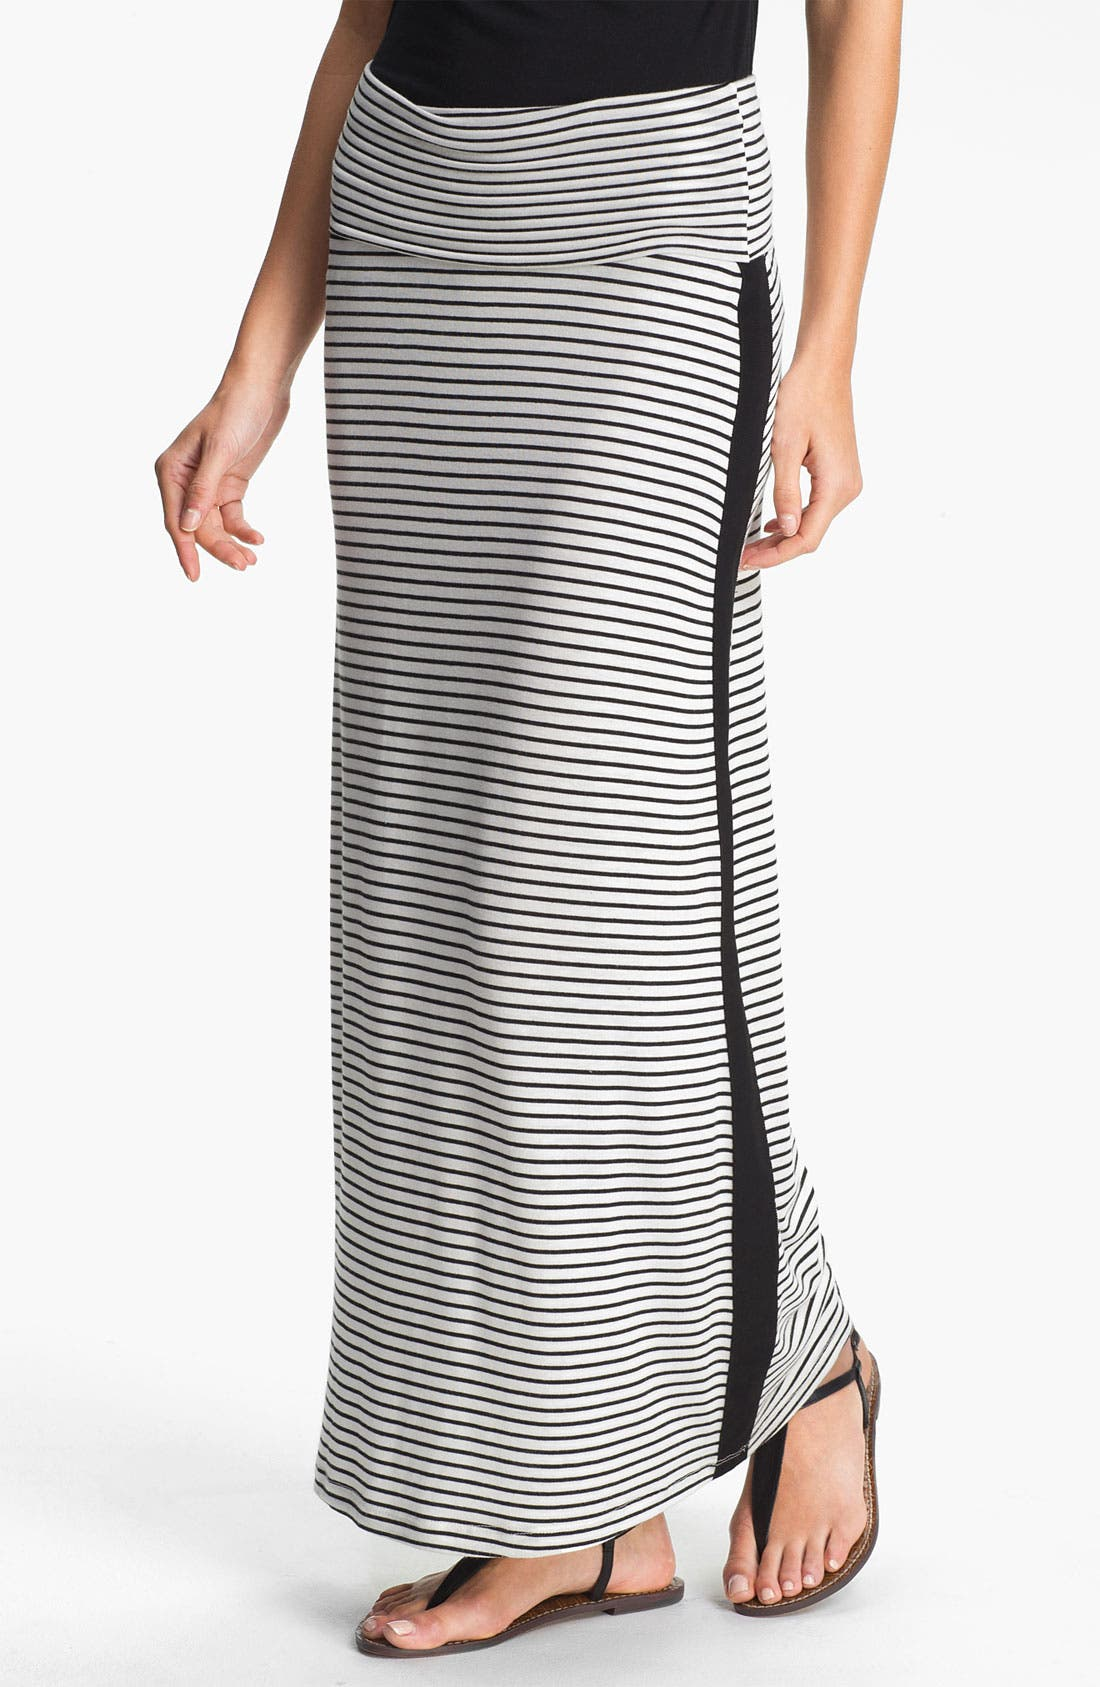 Alternate Image 1 Selected - Everleigh Tuxedo Stripe Maxi Skirt